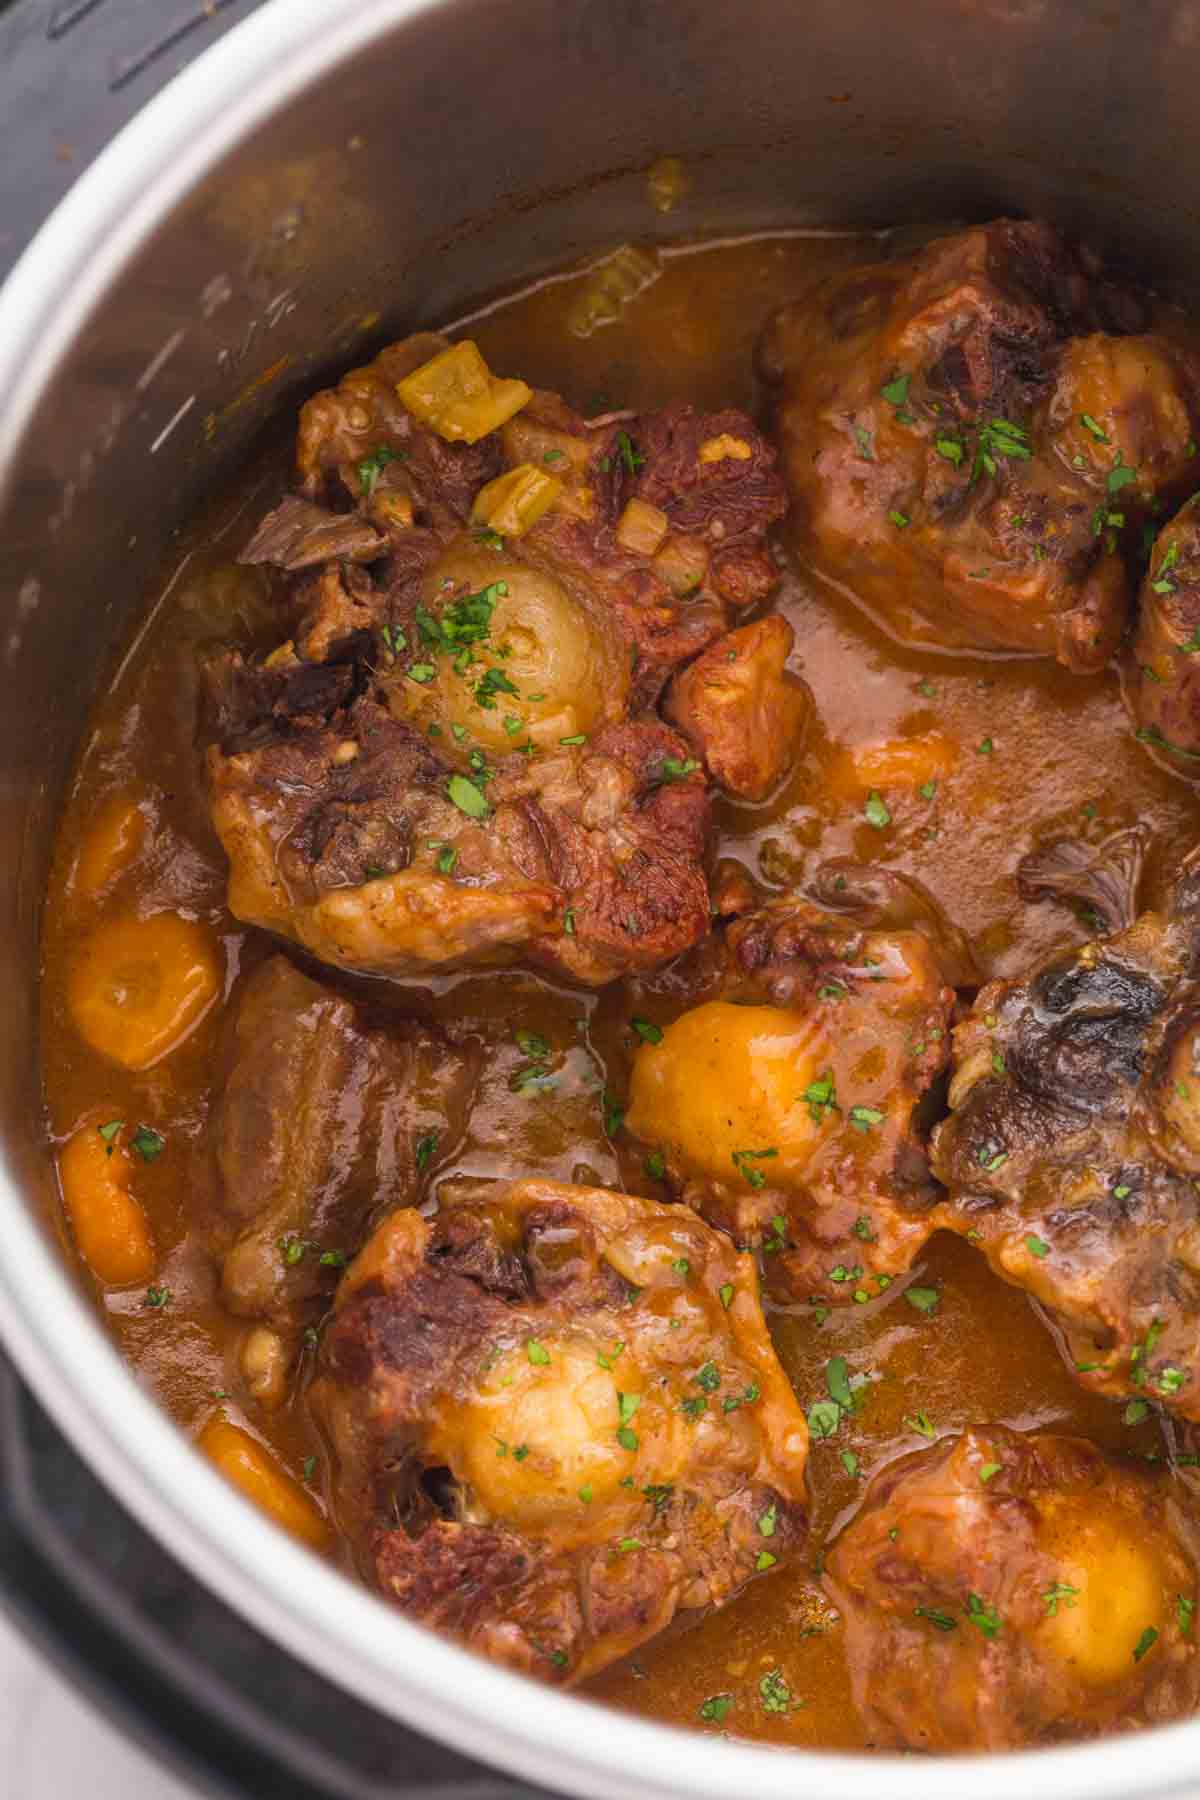 Cooked oxtails in the instant pot with a rich sauce and vegetables